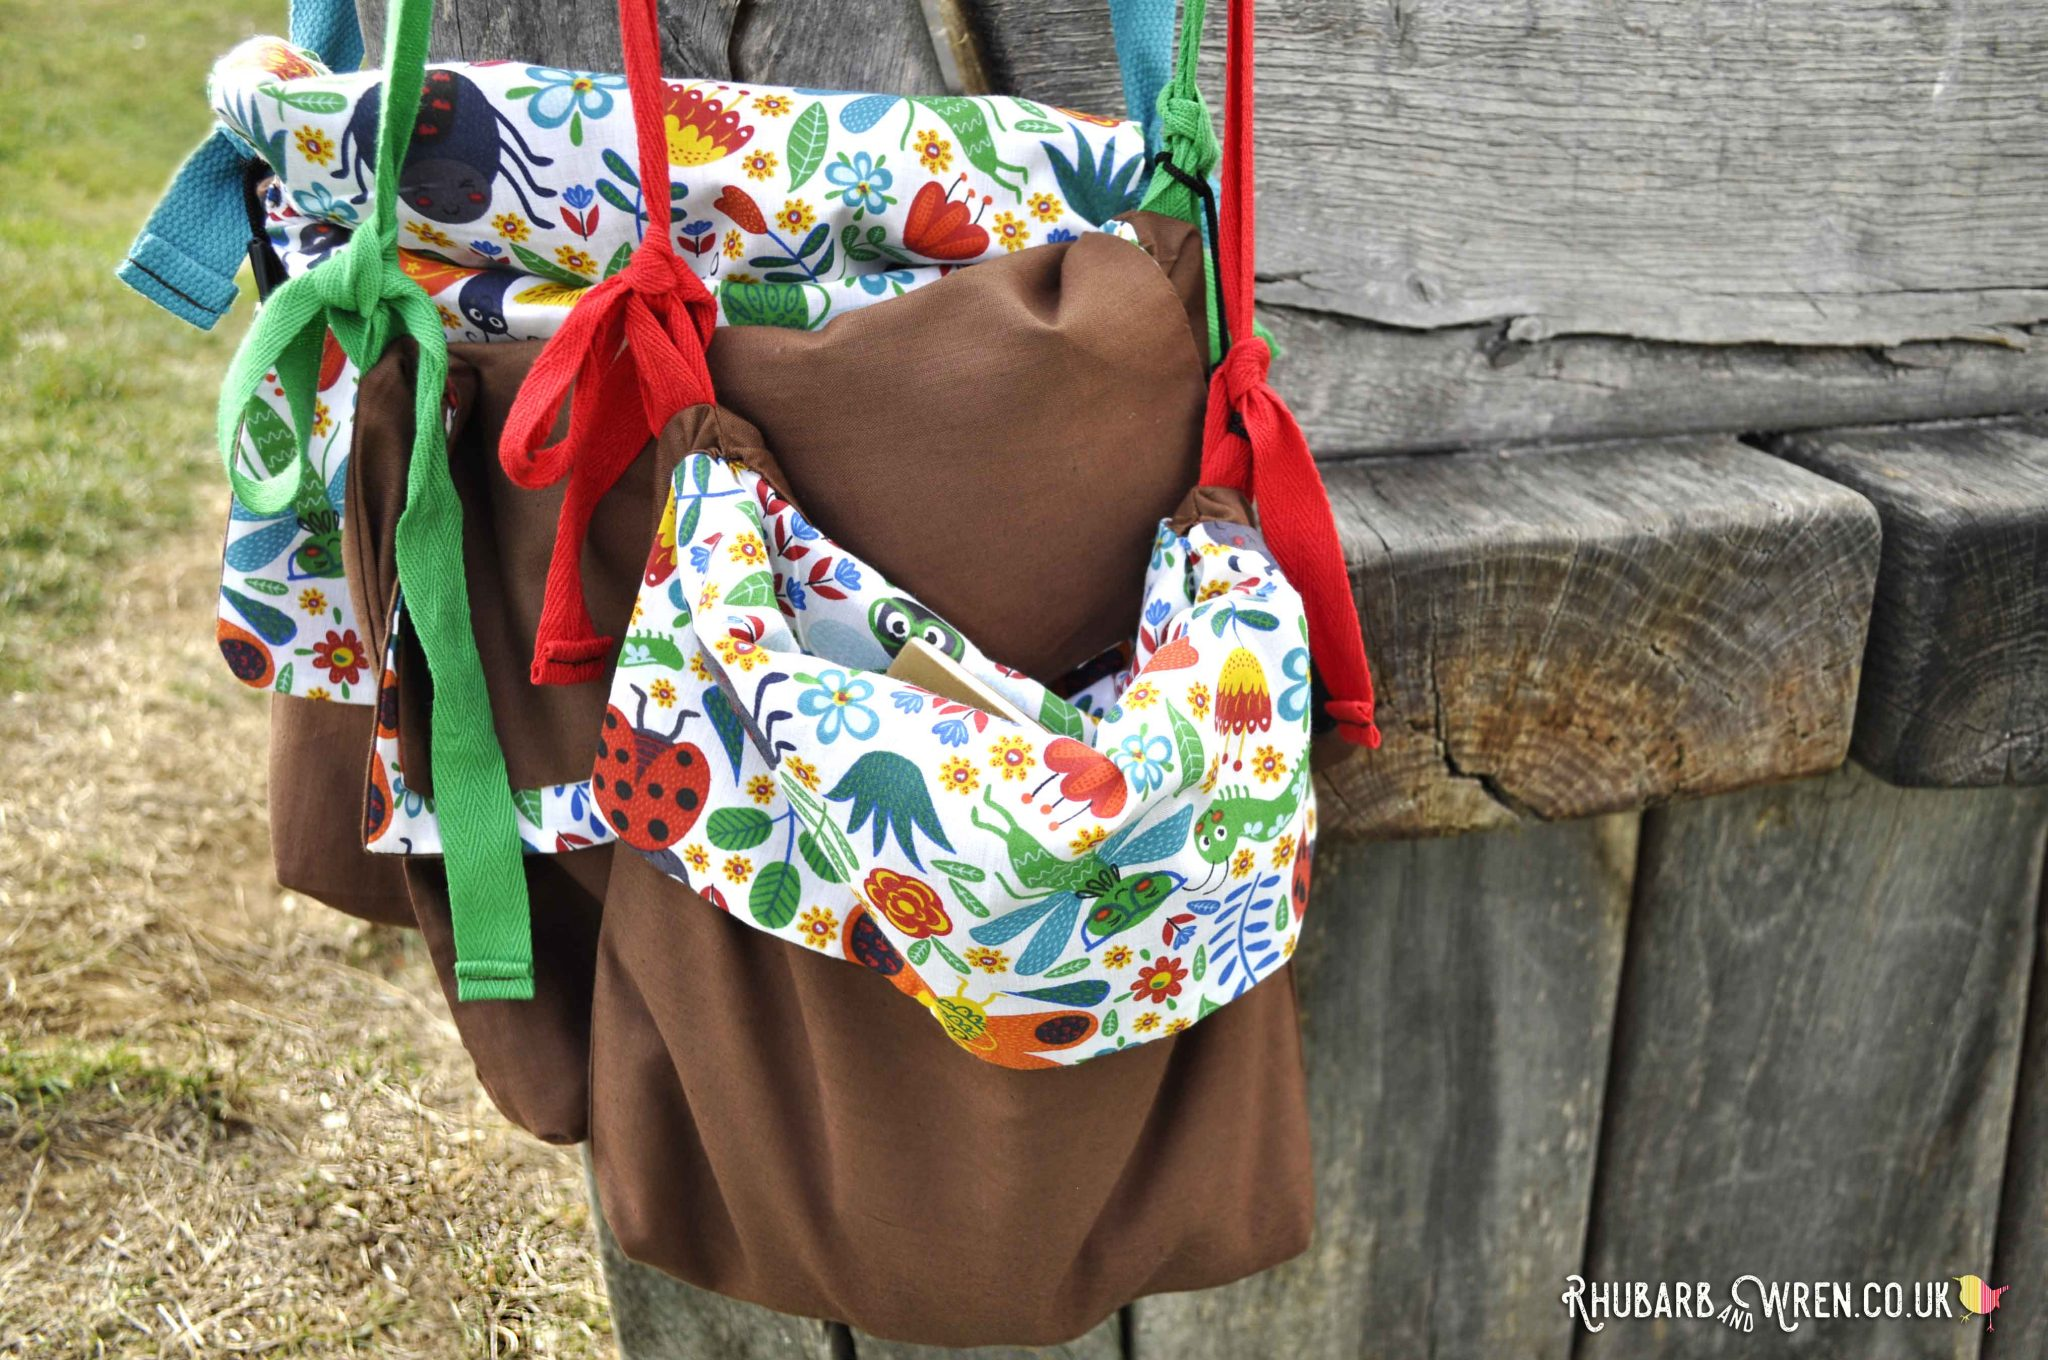 DIY kids nature explorer bags - simple sewing project